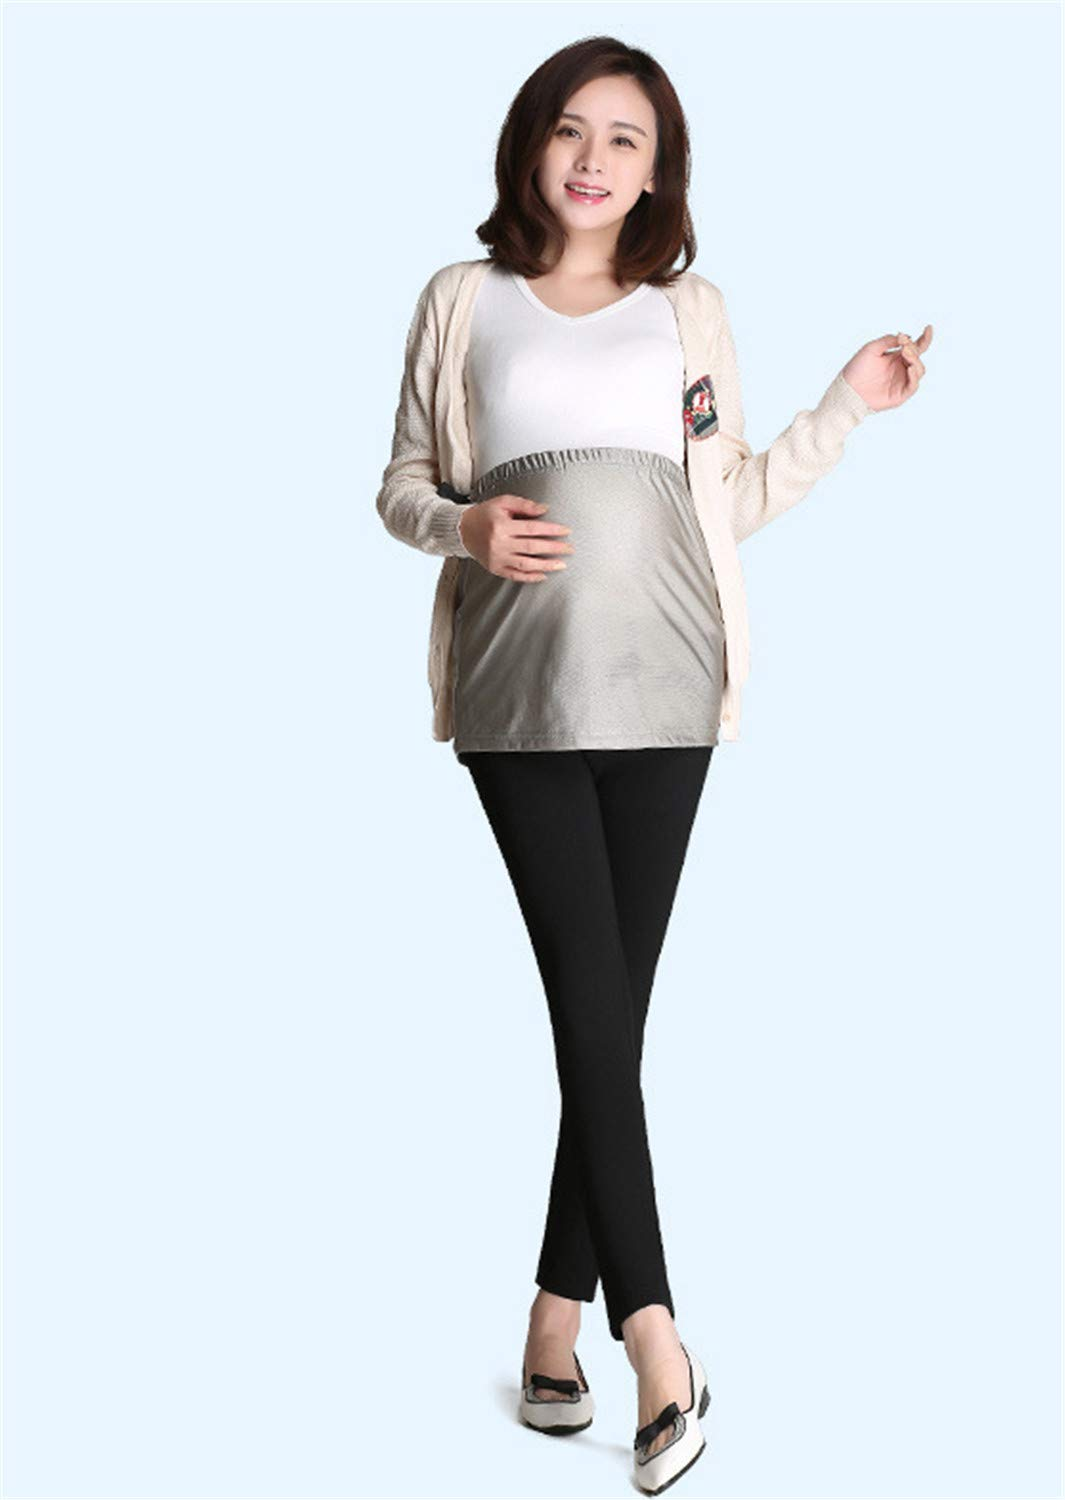 Radiation Predection Apron for Pregnant,Radiation Predection Suit Maternity Wear AntiRadiation Apron Wearing Silver Fiber Sling, Four Seasons to Wear